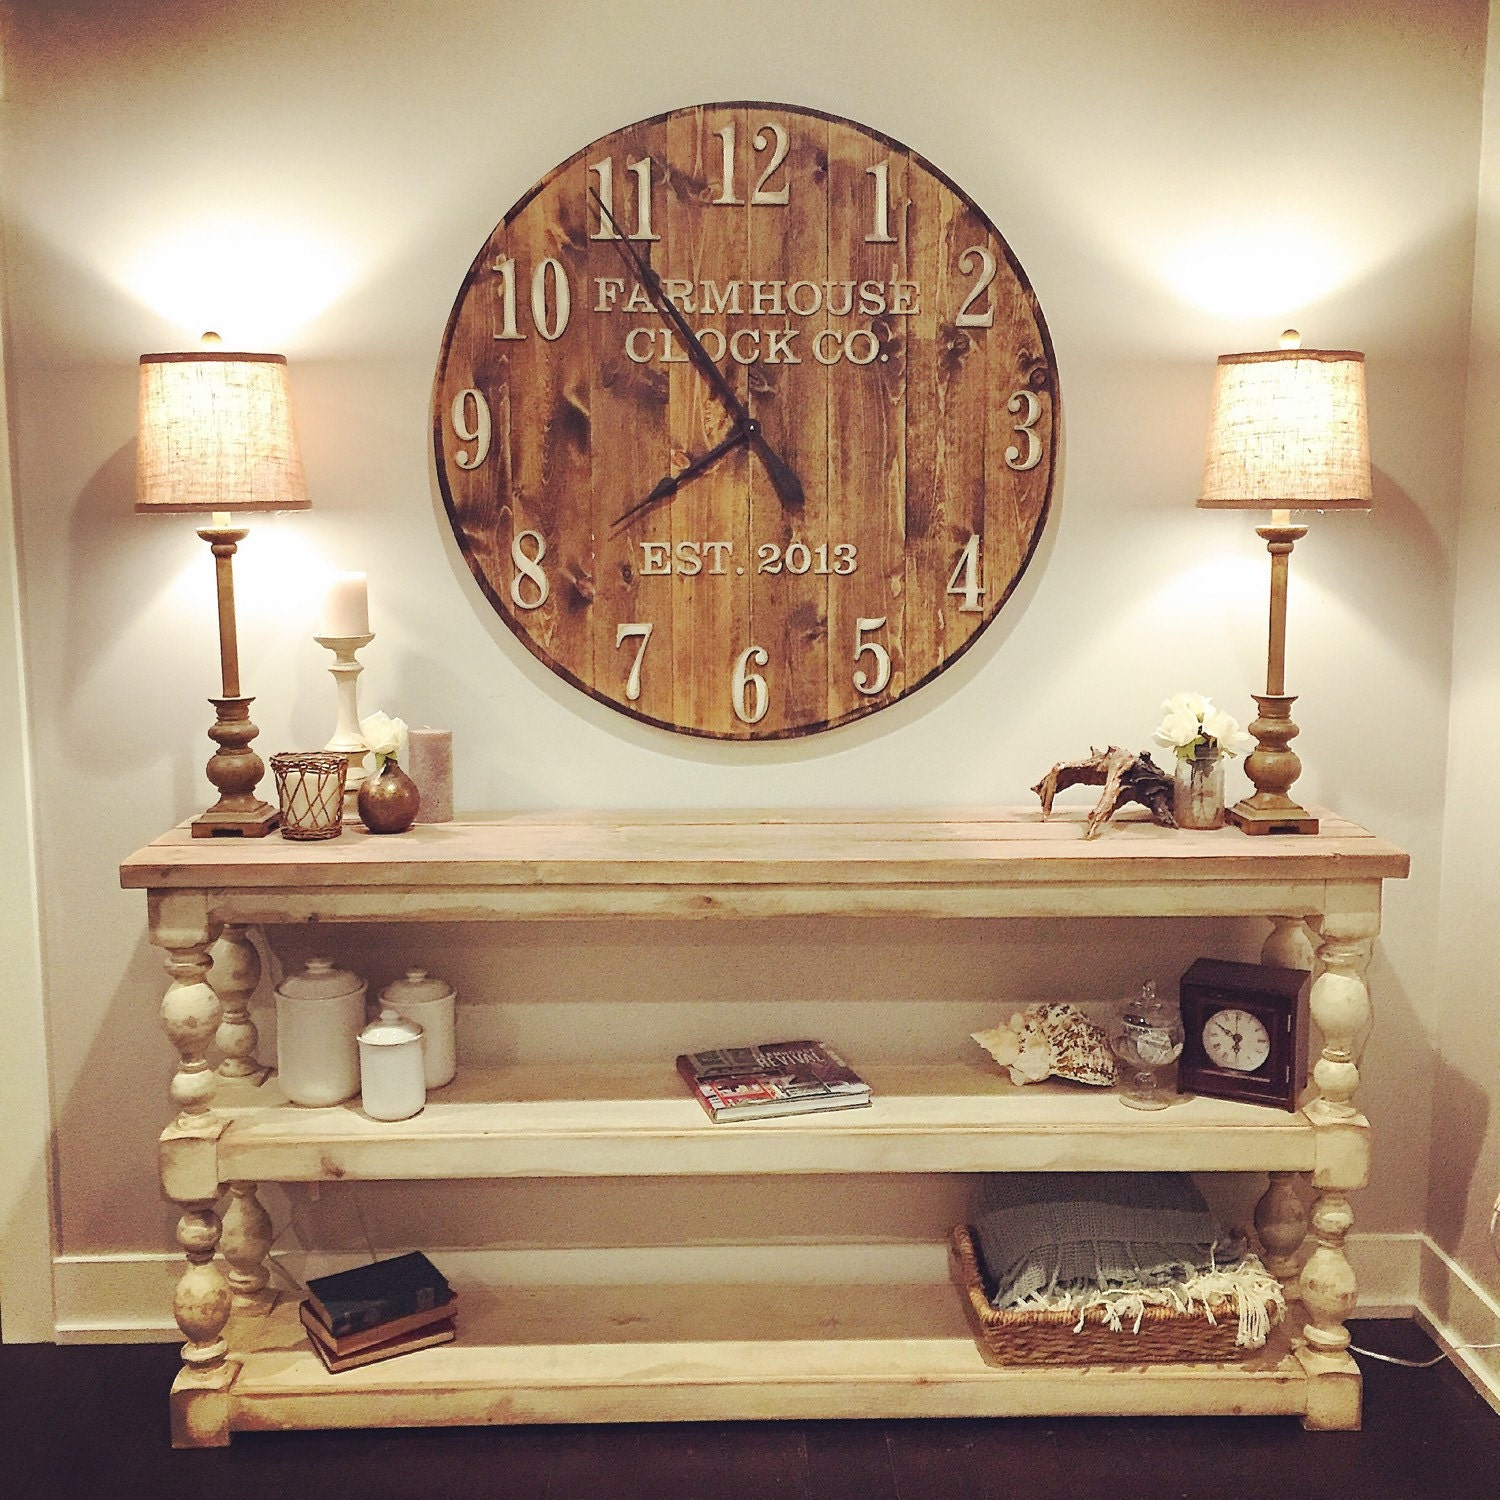 Oversized Round Wall Decor : Farmhouse clock co standard numeral wooden wall